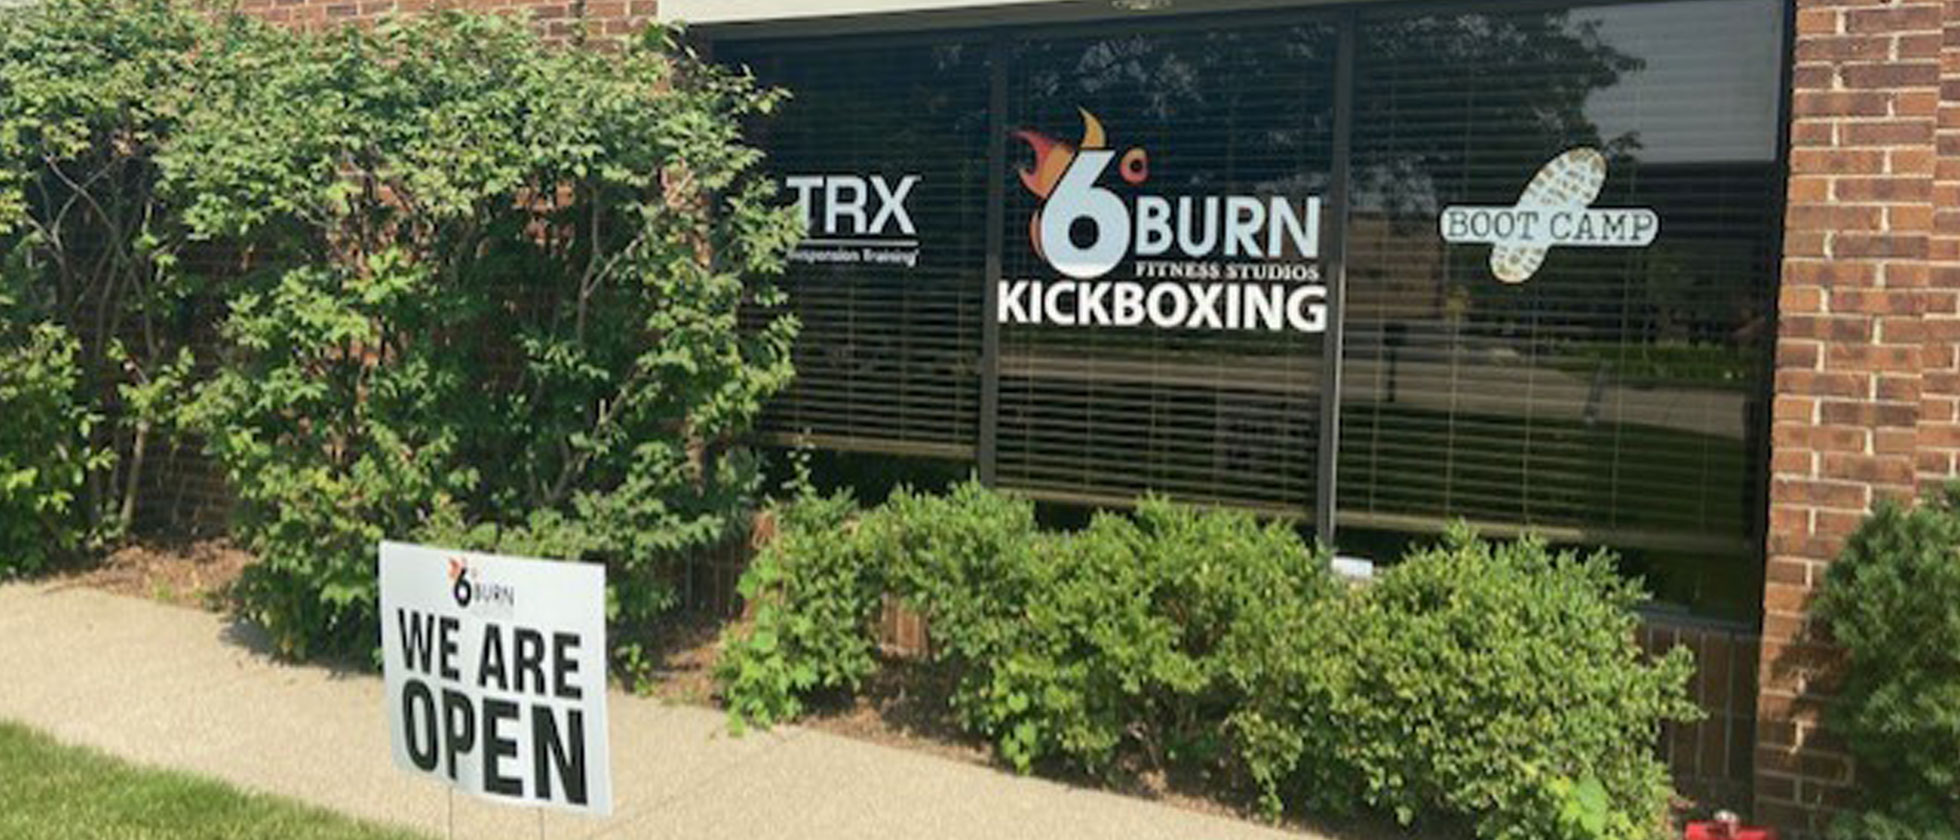 Why 6 Degree Burn Fitness Is Ranked One of the Best Kickboxing Studios In Sterling Heights